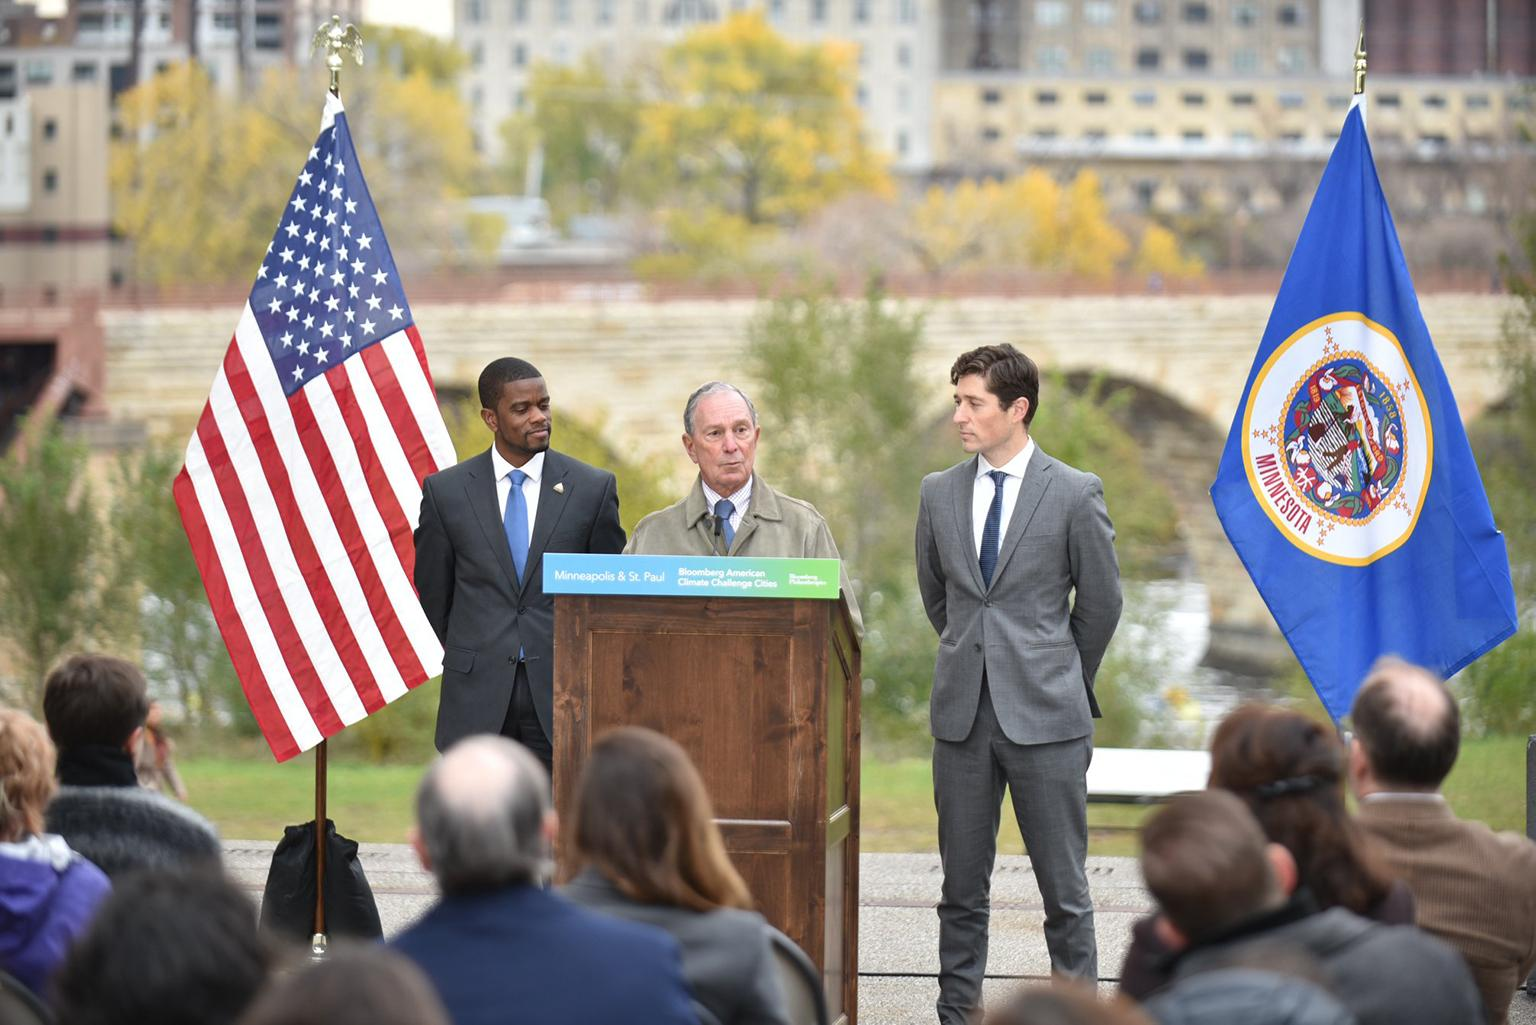 Former New York Mayor Michael Bloomberg speaks alongside the mayors of Minneapolis and St. Paul on Monday, Oct. 29, while announcing the Midwest winners of the American Cities Climate Challenge. (Courtesy Bloomberg Philanthropies)